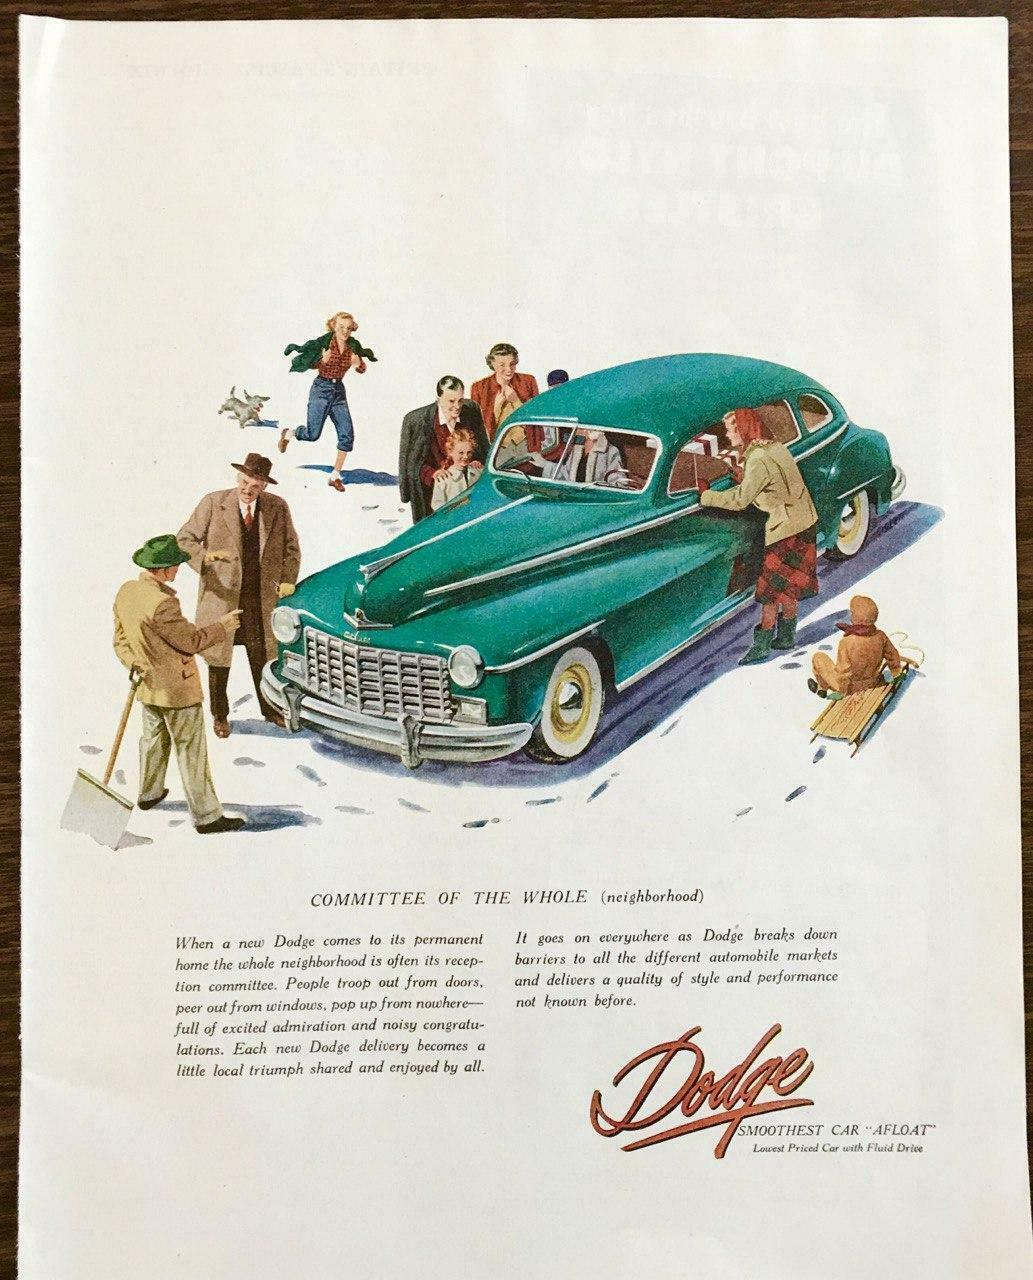 Primary image for 1947 Dodge Print Ad Smoothest Car Afloat Snow Winter Neighbors Sled Shoveling